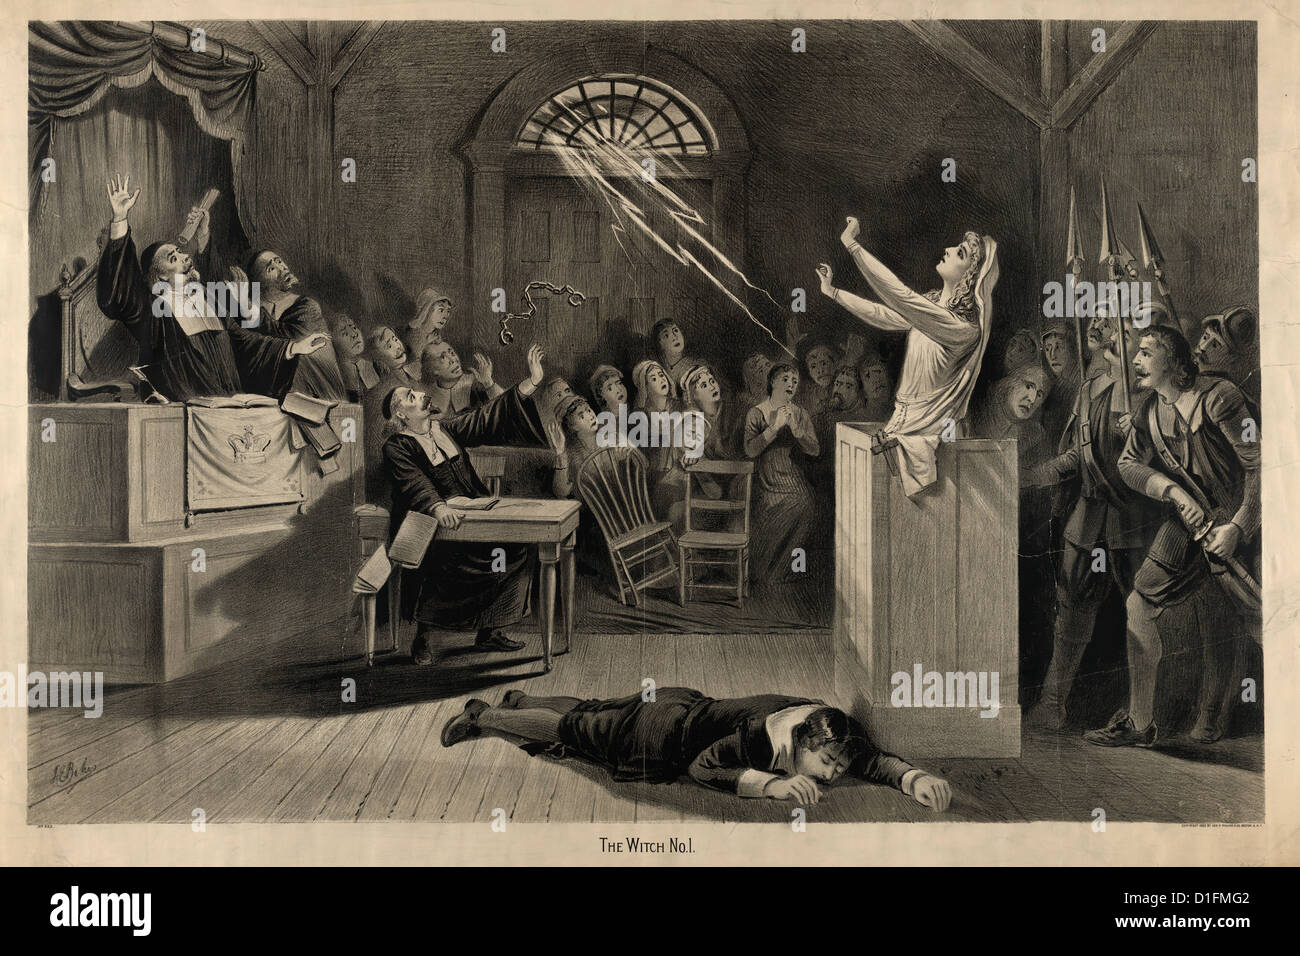 the salem witchcraft trials Haunted happenings is here click the banner to be directed to helpful information on planning your trip to our museum and salem this festive season.